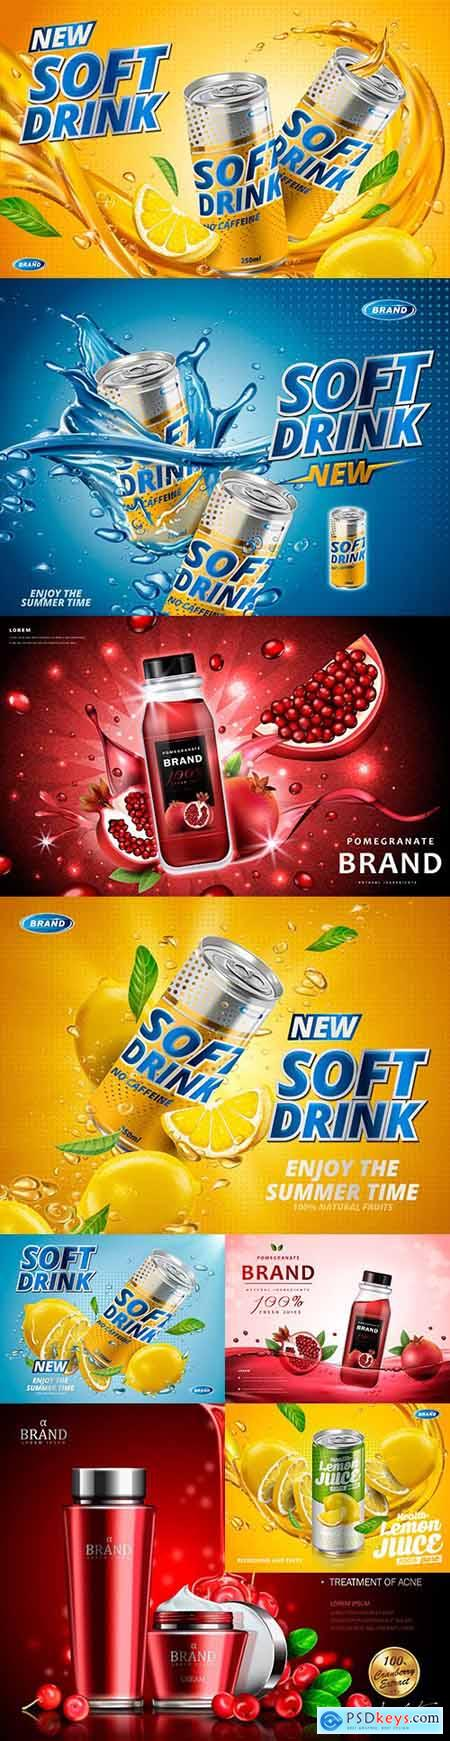 Lemon-flavored soft drink and pomegranate juice design advertising